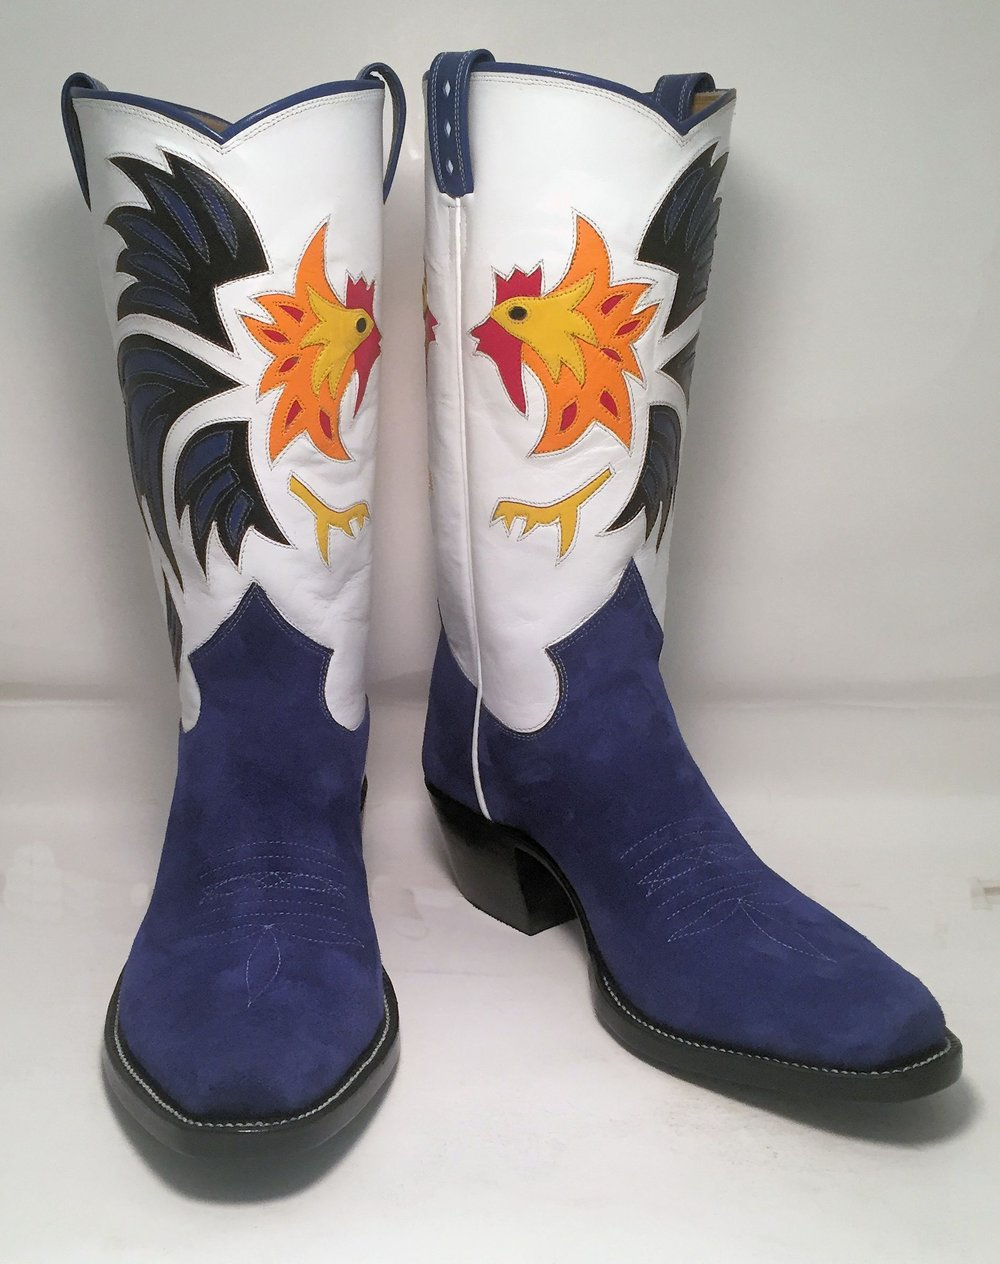 Blue Pig and Kangaroo Rooster Boot